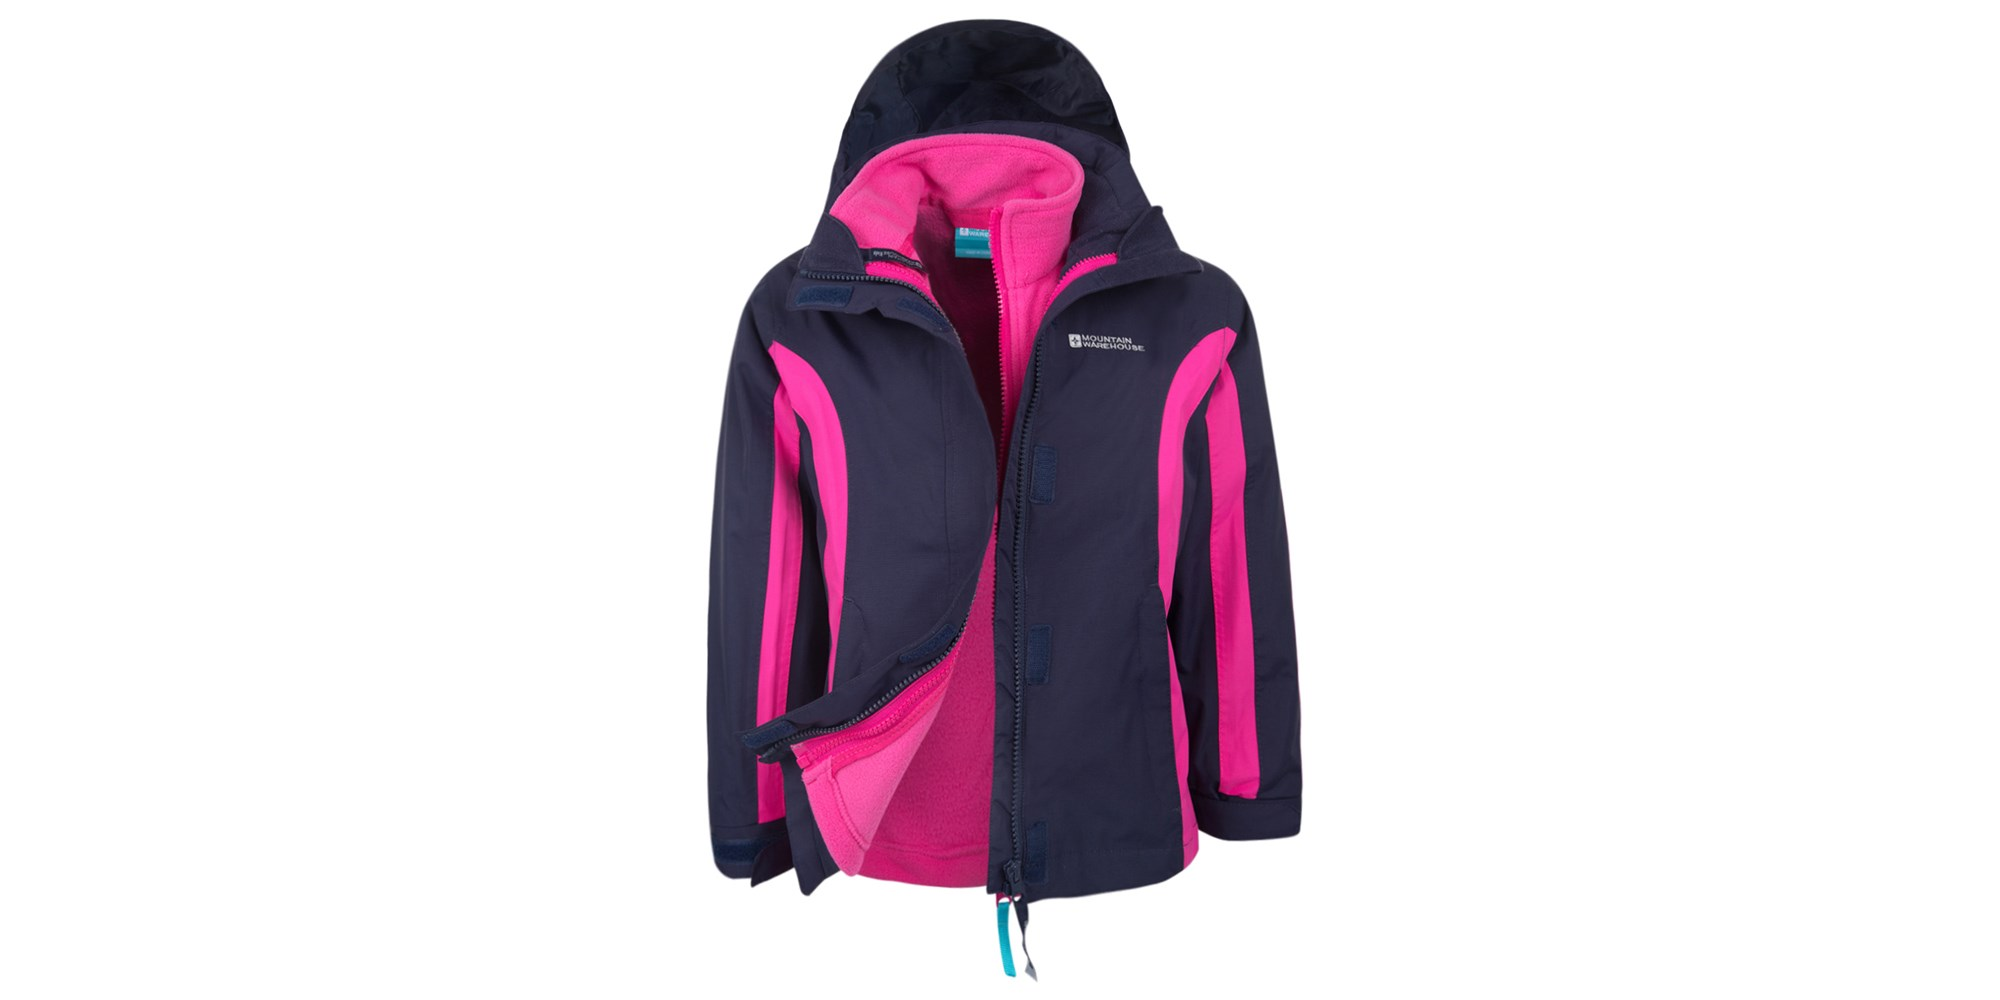 Parkas & Coats Triclimate 3-in-1 Ski & Snowboard BOTTOMS Shop All BOTTOMS. Trousers Ski & Snowboard TOPS Shop All TOPS. Fleeces & Midlayers Sweatshirts & Hoodies Shirts & T-Shirts Running & Training FOOTWEAR BASELAYERS NEW FOR KIDS. TROUSERS & SHORTS. HATS AND GLOVES. Shop. Men's;.